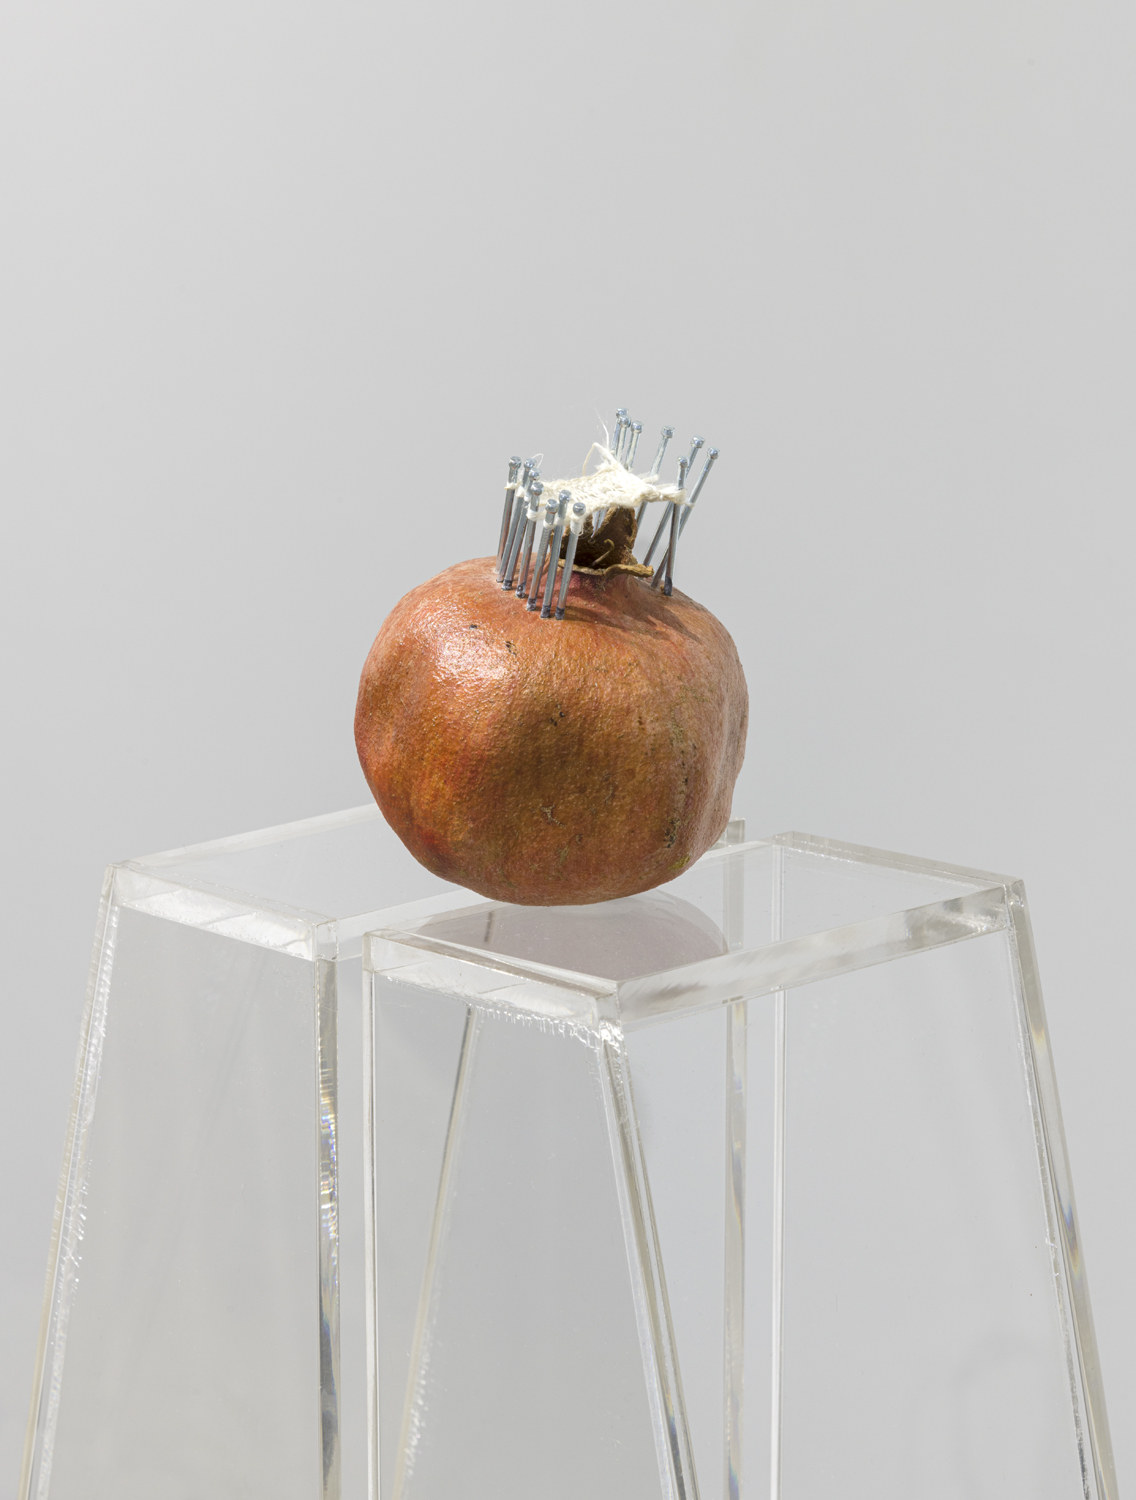 This artwork installation by the artist Alexandre Dorriz includes a clear pedestal with a pomegranate sculpture placed on top. The pomegranate is rust colored, with several silver metal pins placed in a circle on top of it. There is white fiber looped around and in between the metal pins.